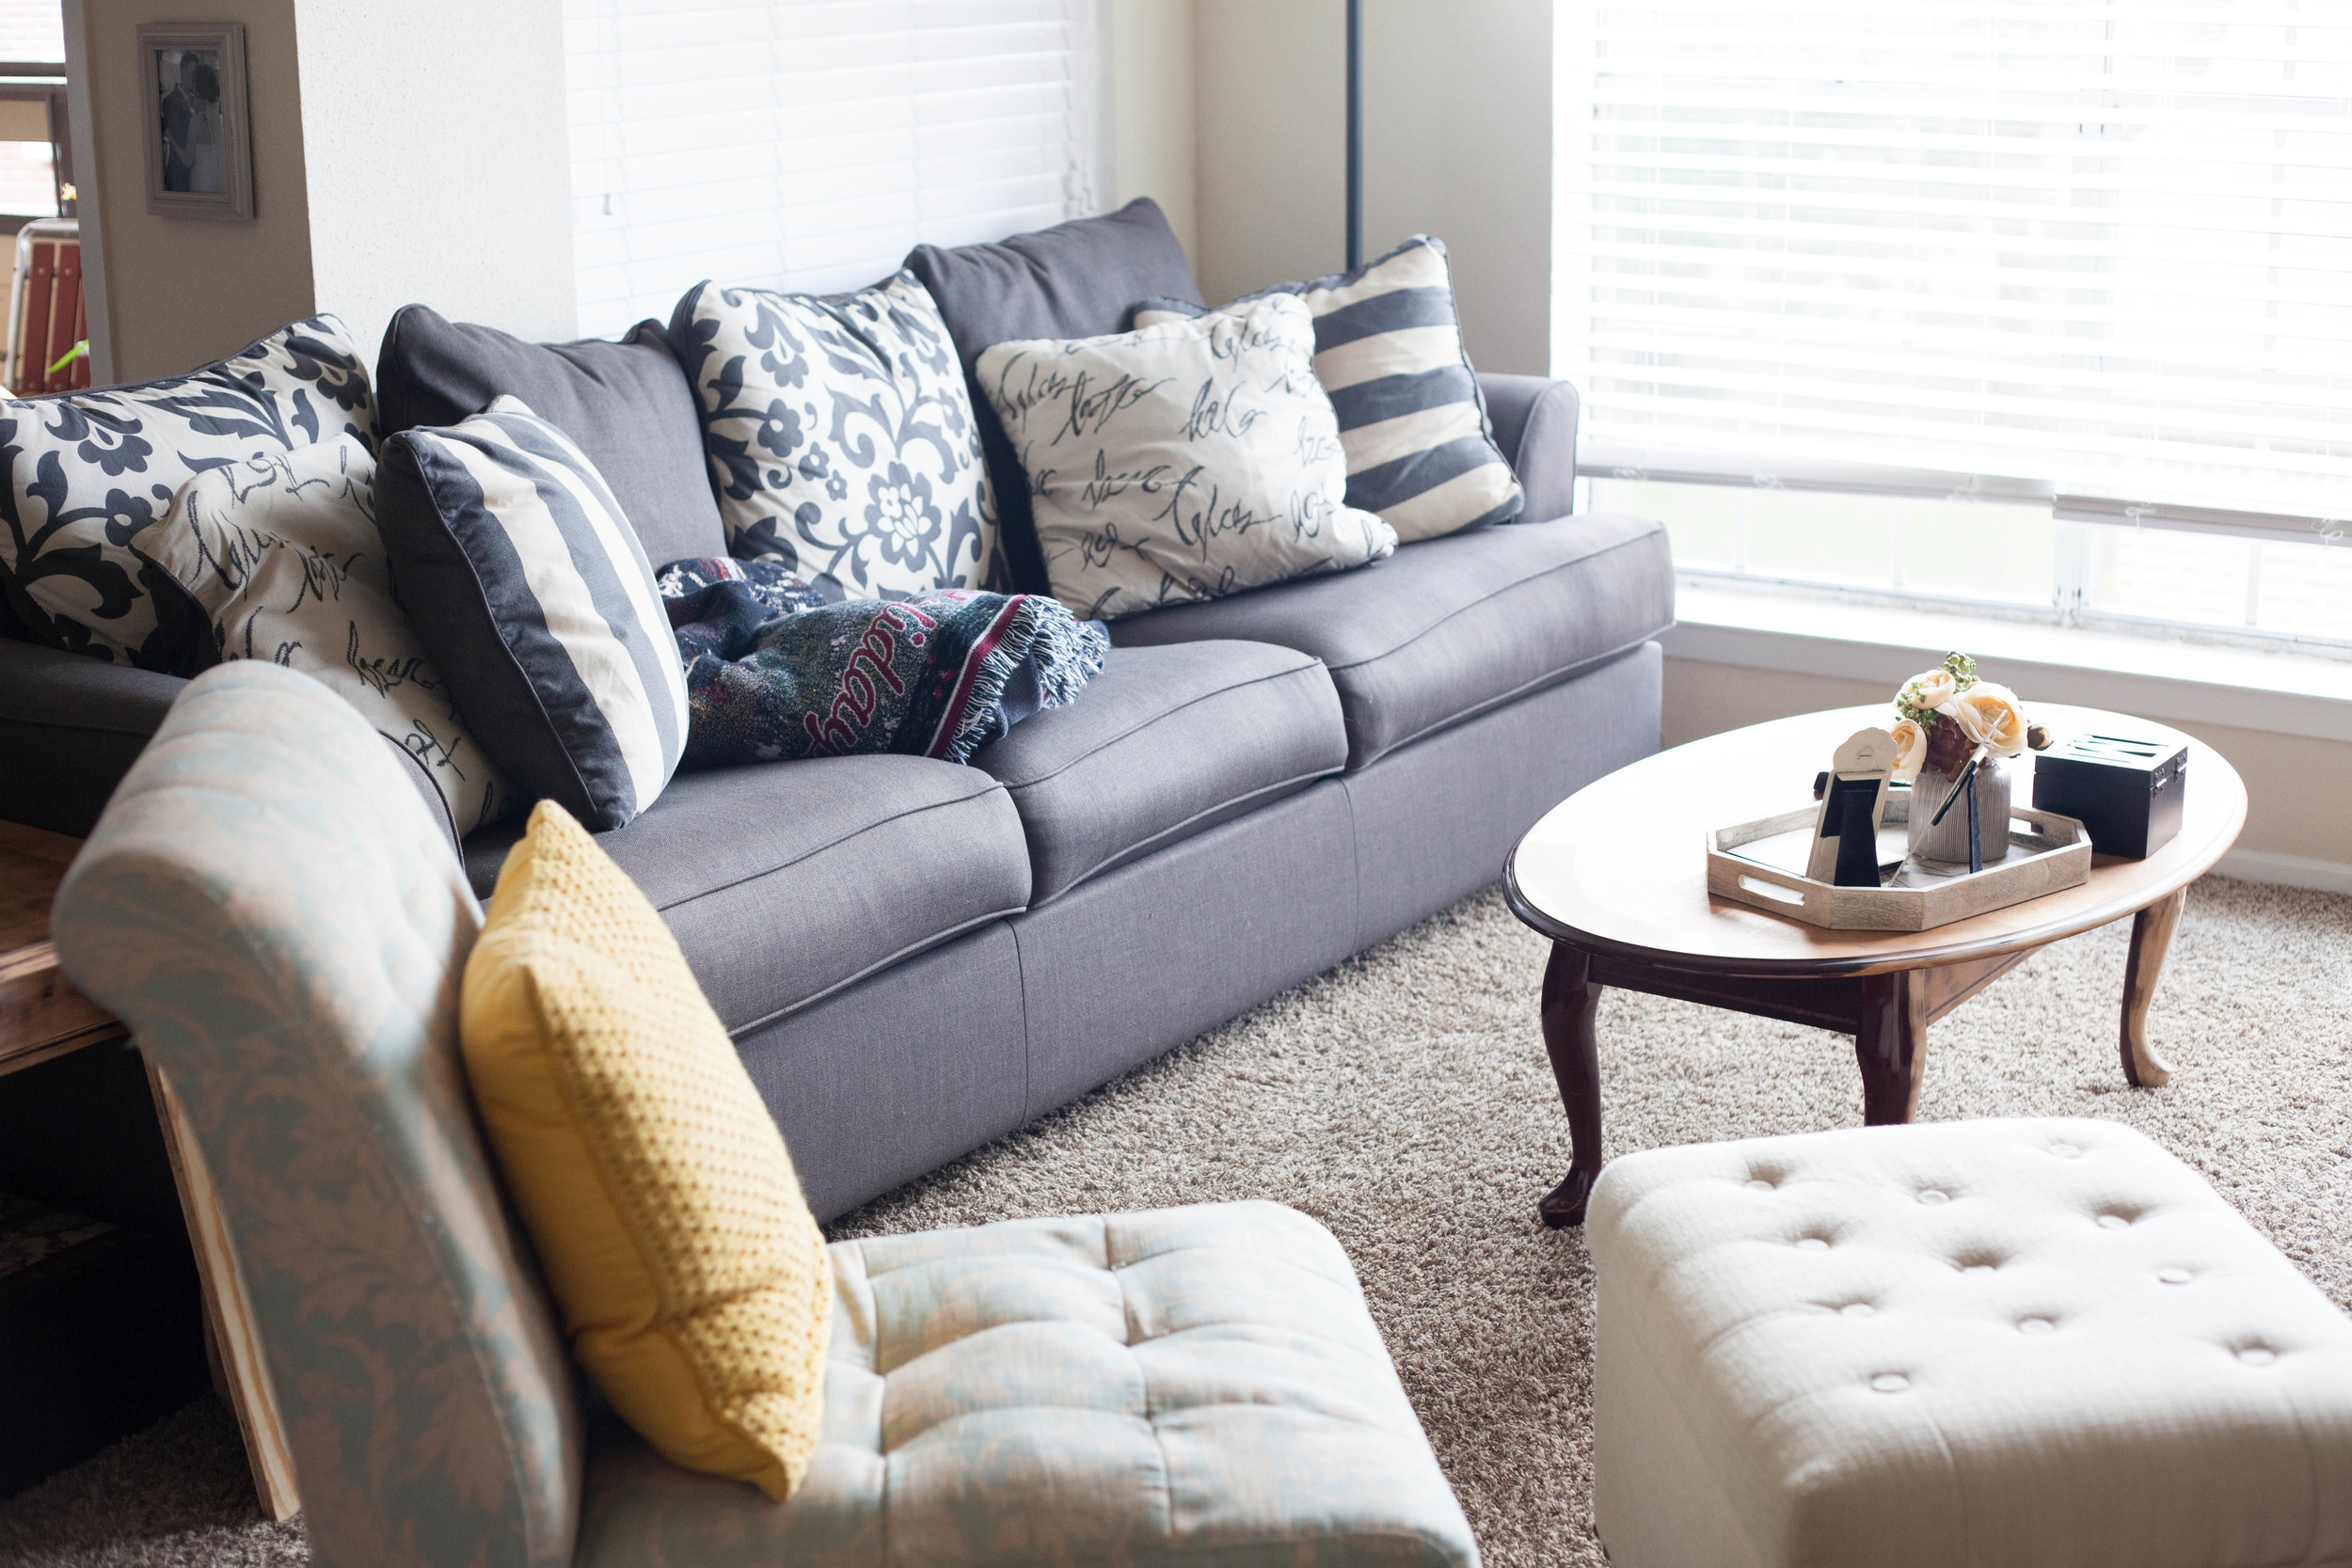 """Couch:  Ashley Furniture  Ottoman:  Target  Yellow pillow:  Target  Flowers:  Michael's  Table: Hand-me-down from my parents, Cory sanded it to get the worn look. Tray: Was a birthday gift. Probably from Kirklands or something! """"M"""" box: Hand-me-down from my mother-in-law."""